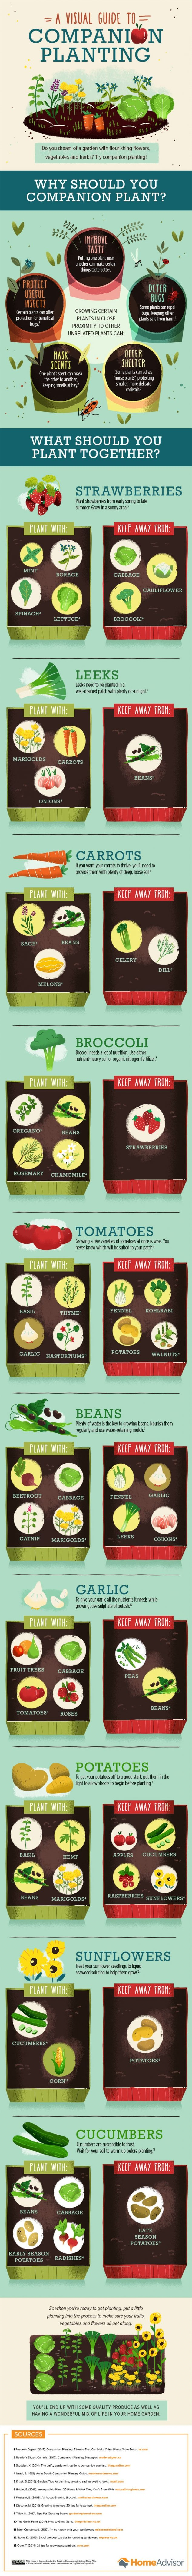 10 Companion Planting Tips & Guide